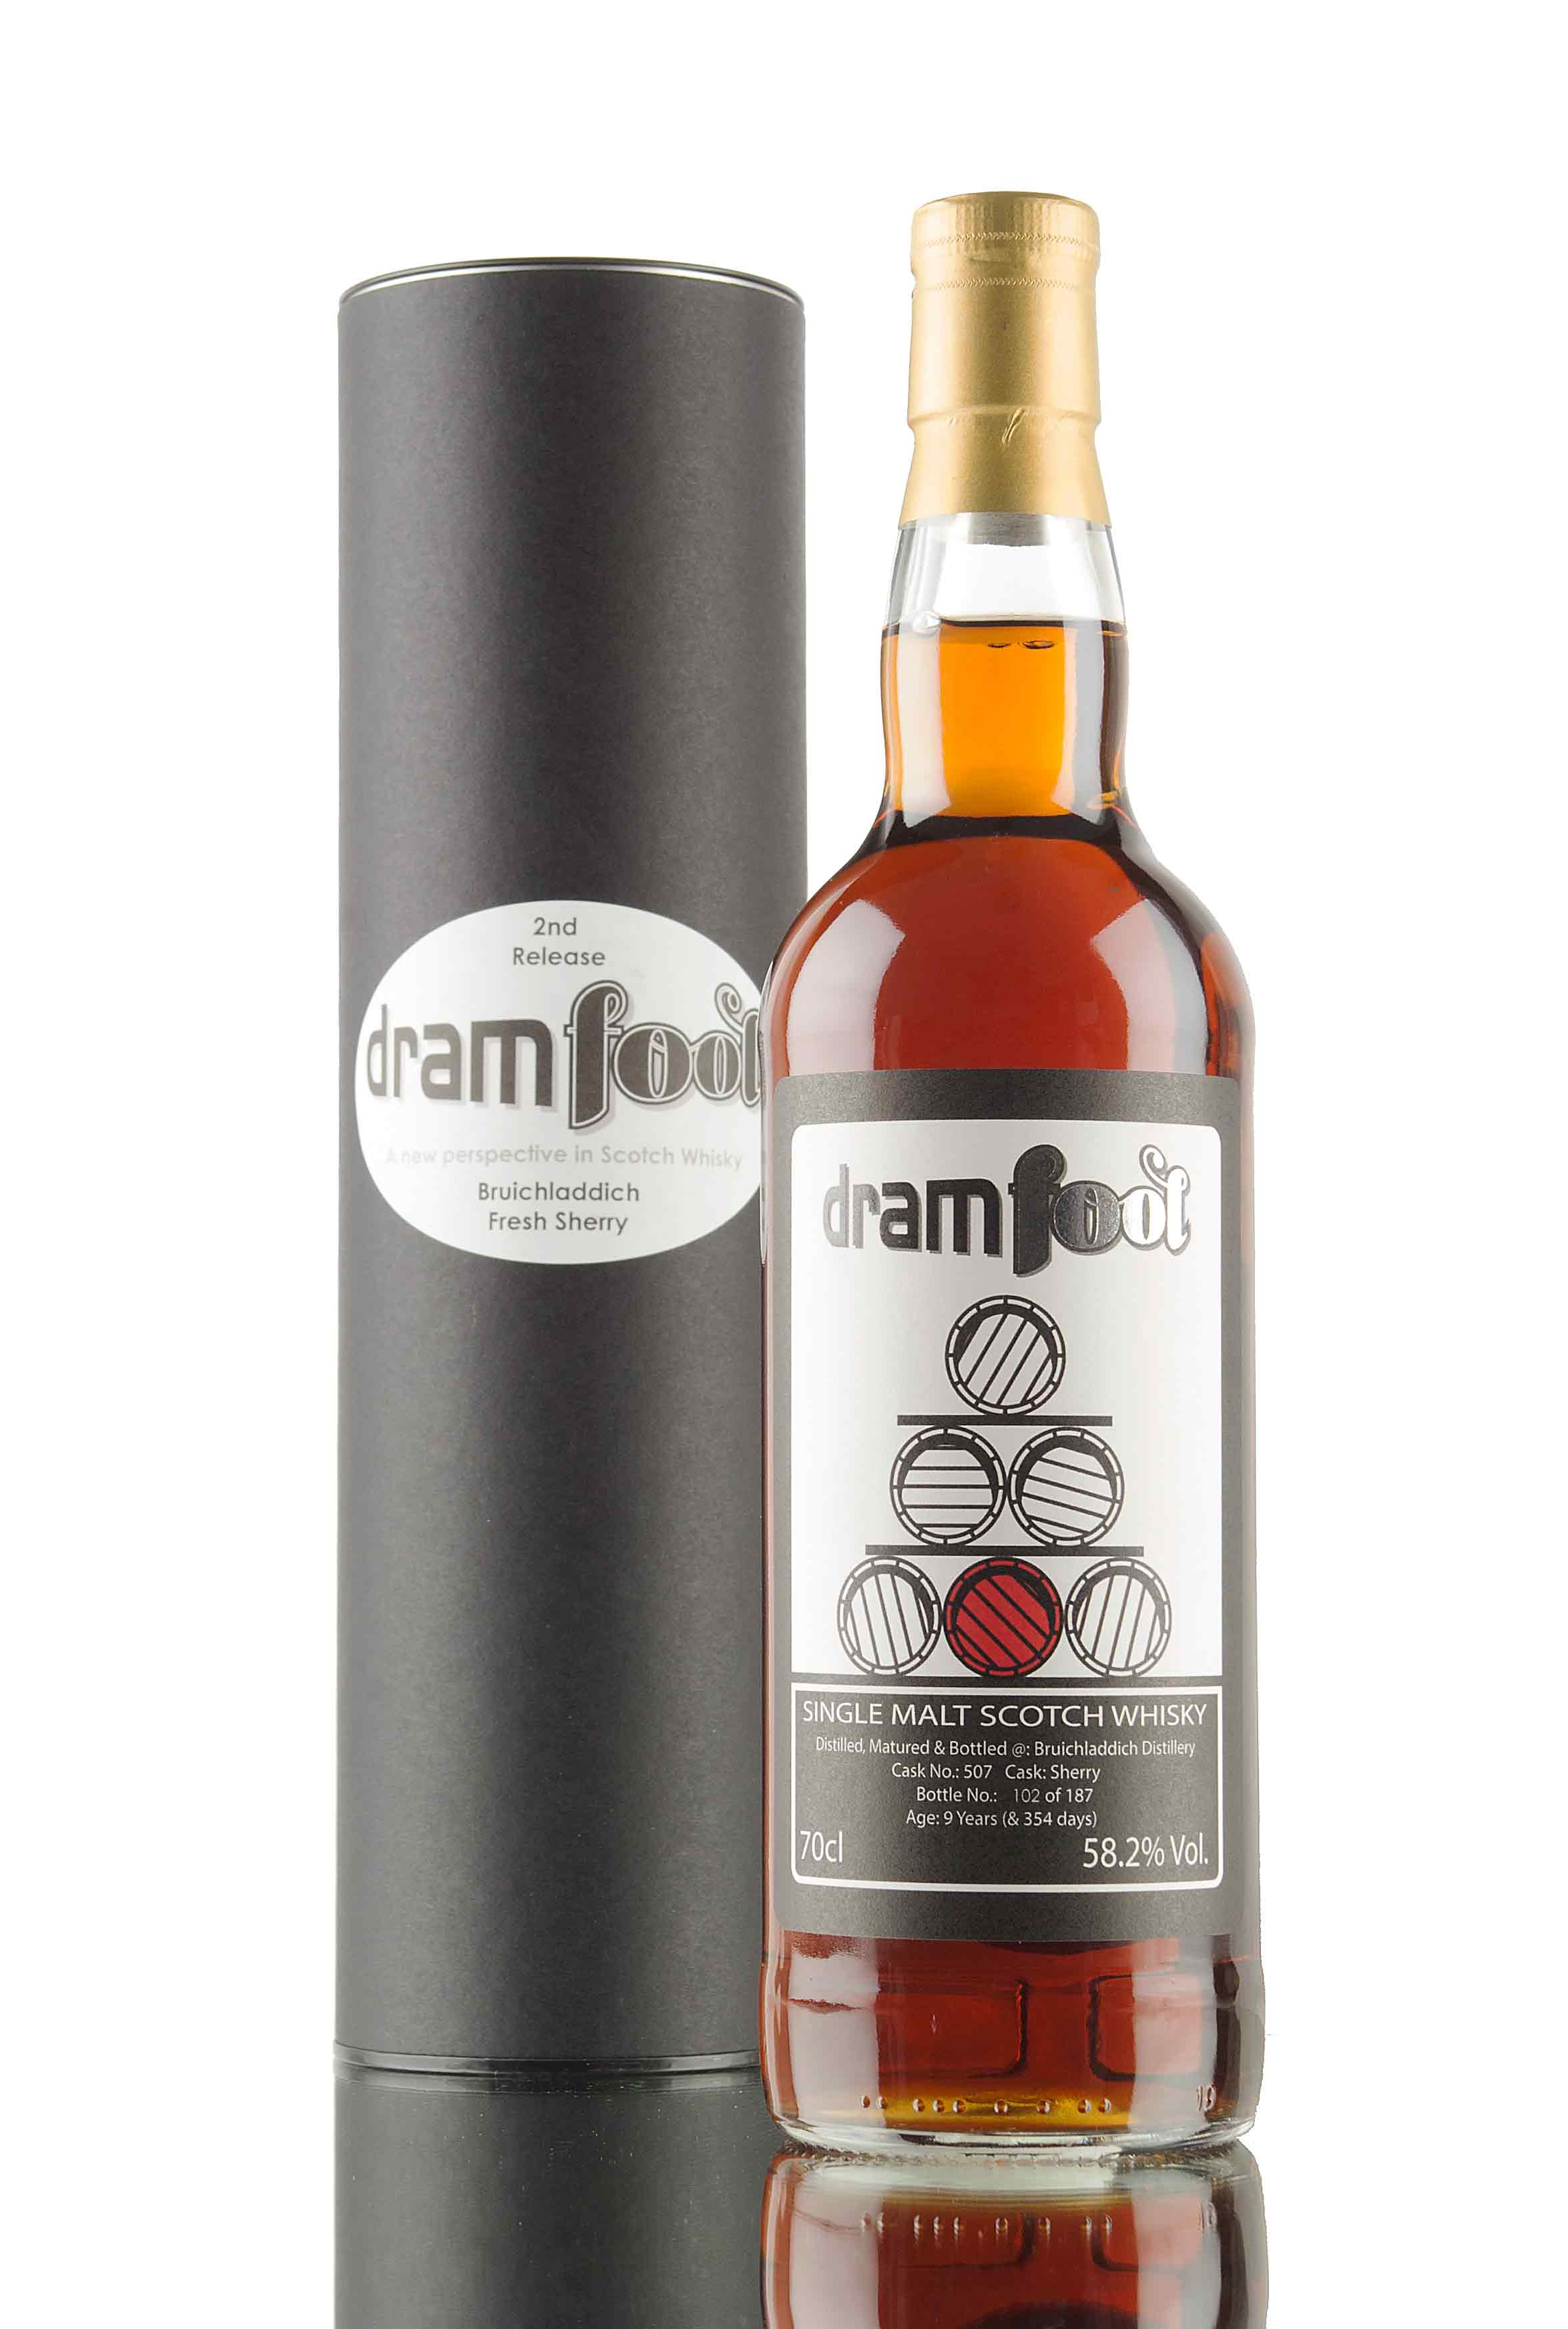 Bowmore 9 Year Old (& 354 Days) - Cask 507 / Dram Fool